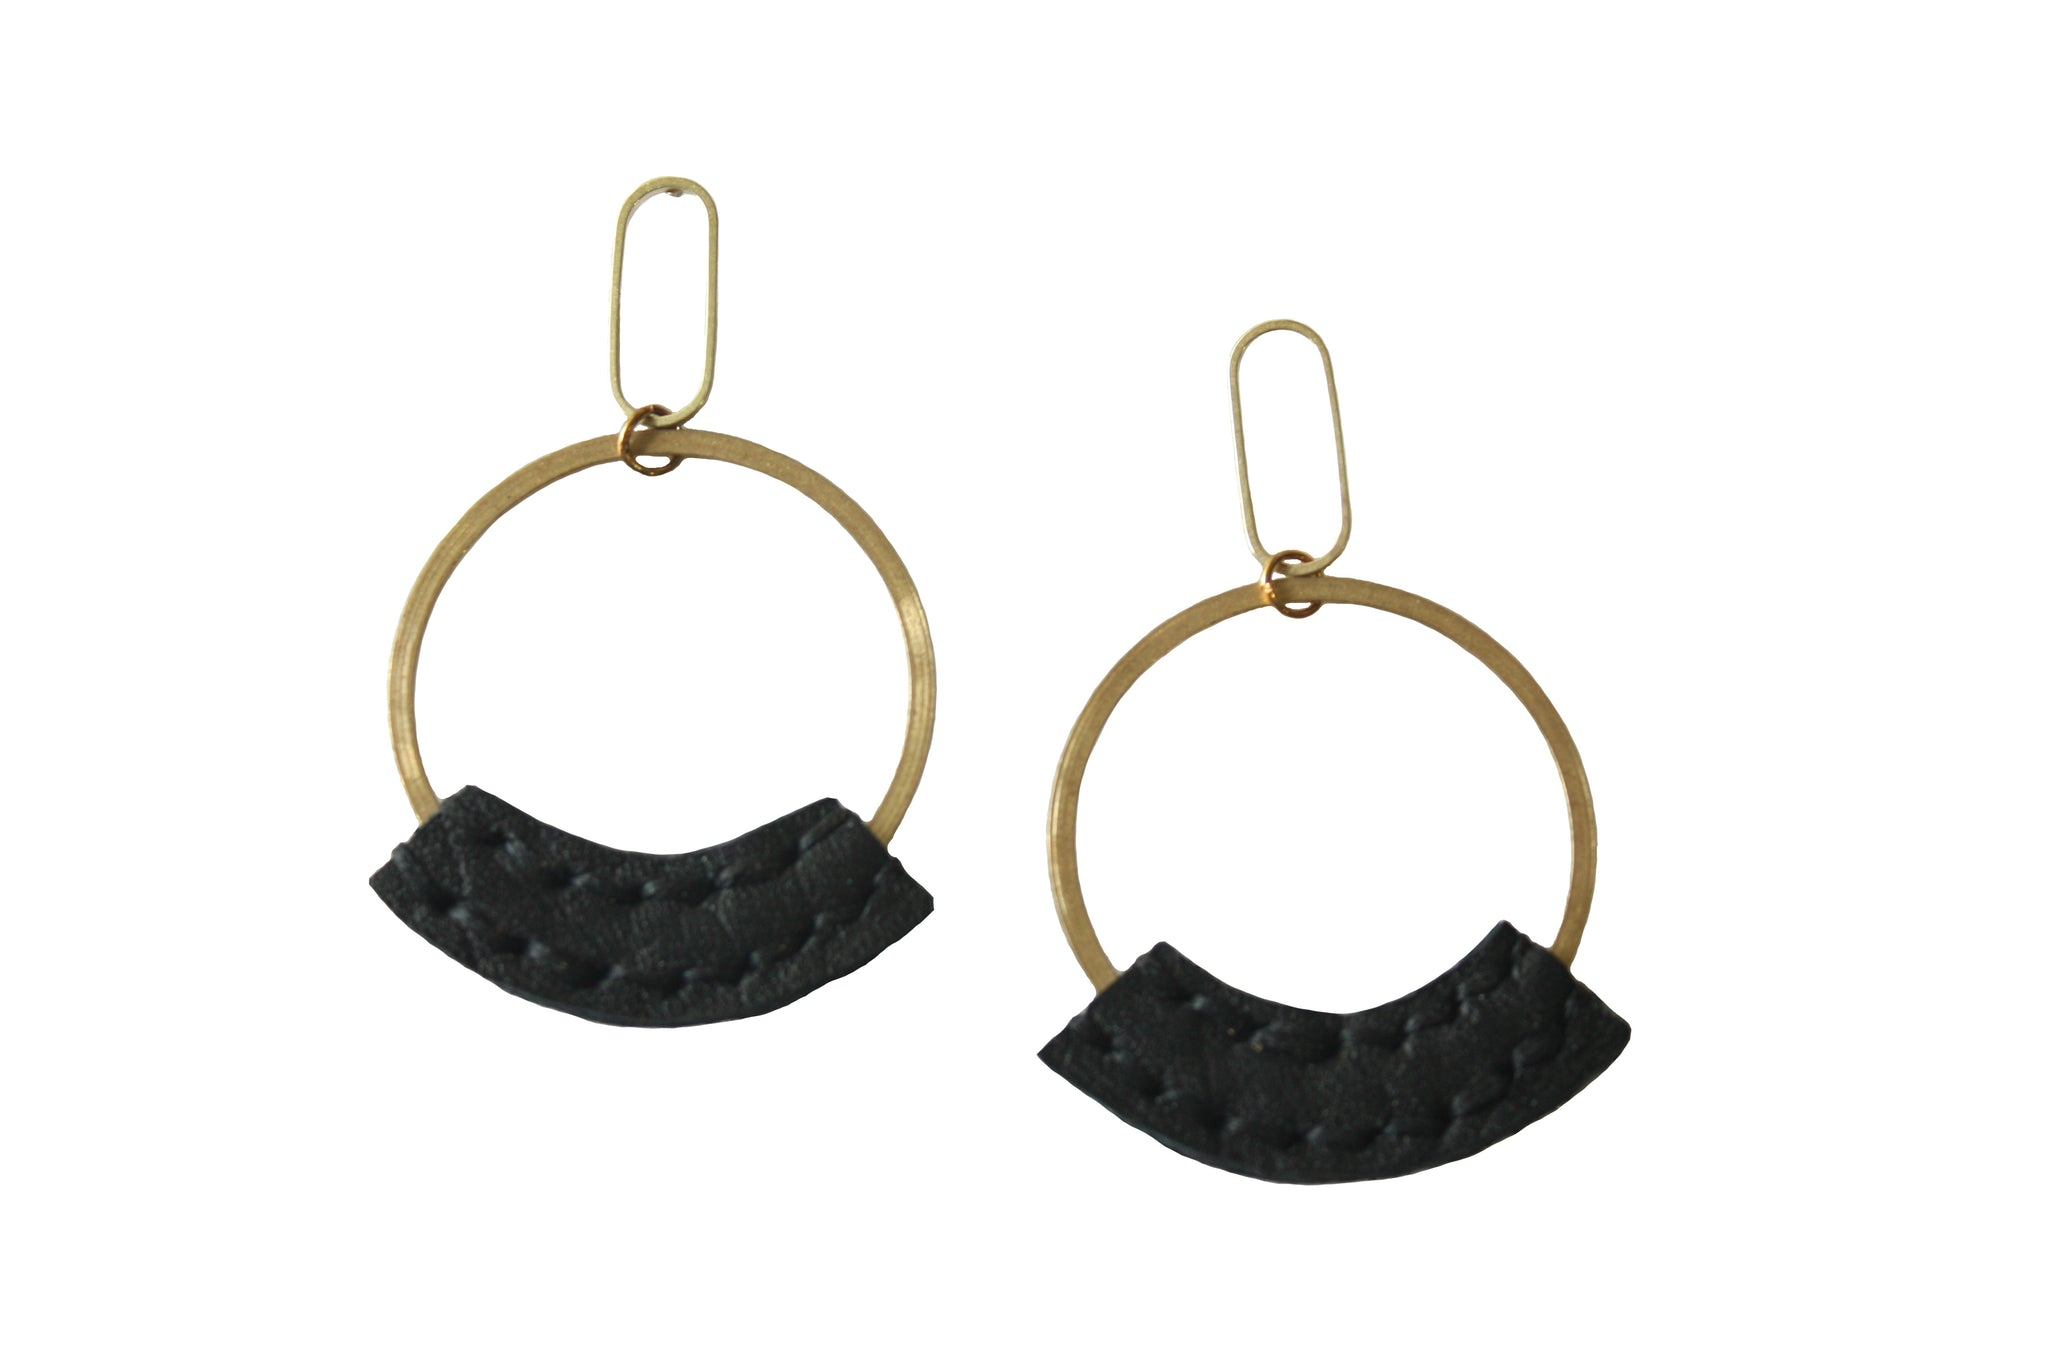 Wisp Hoop Earrings with Bison Leather in Black